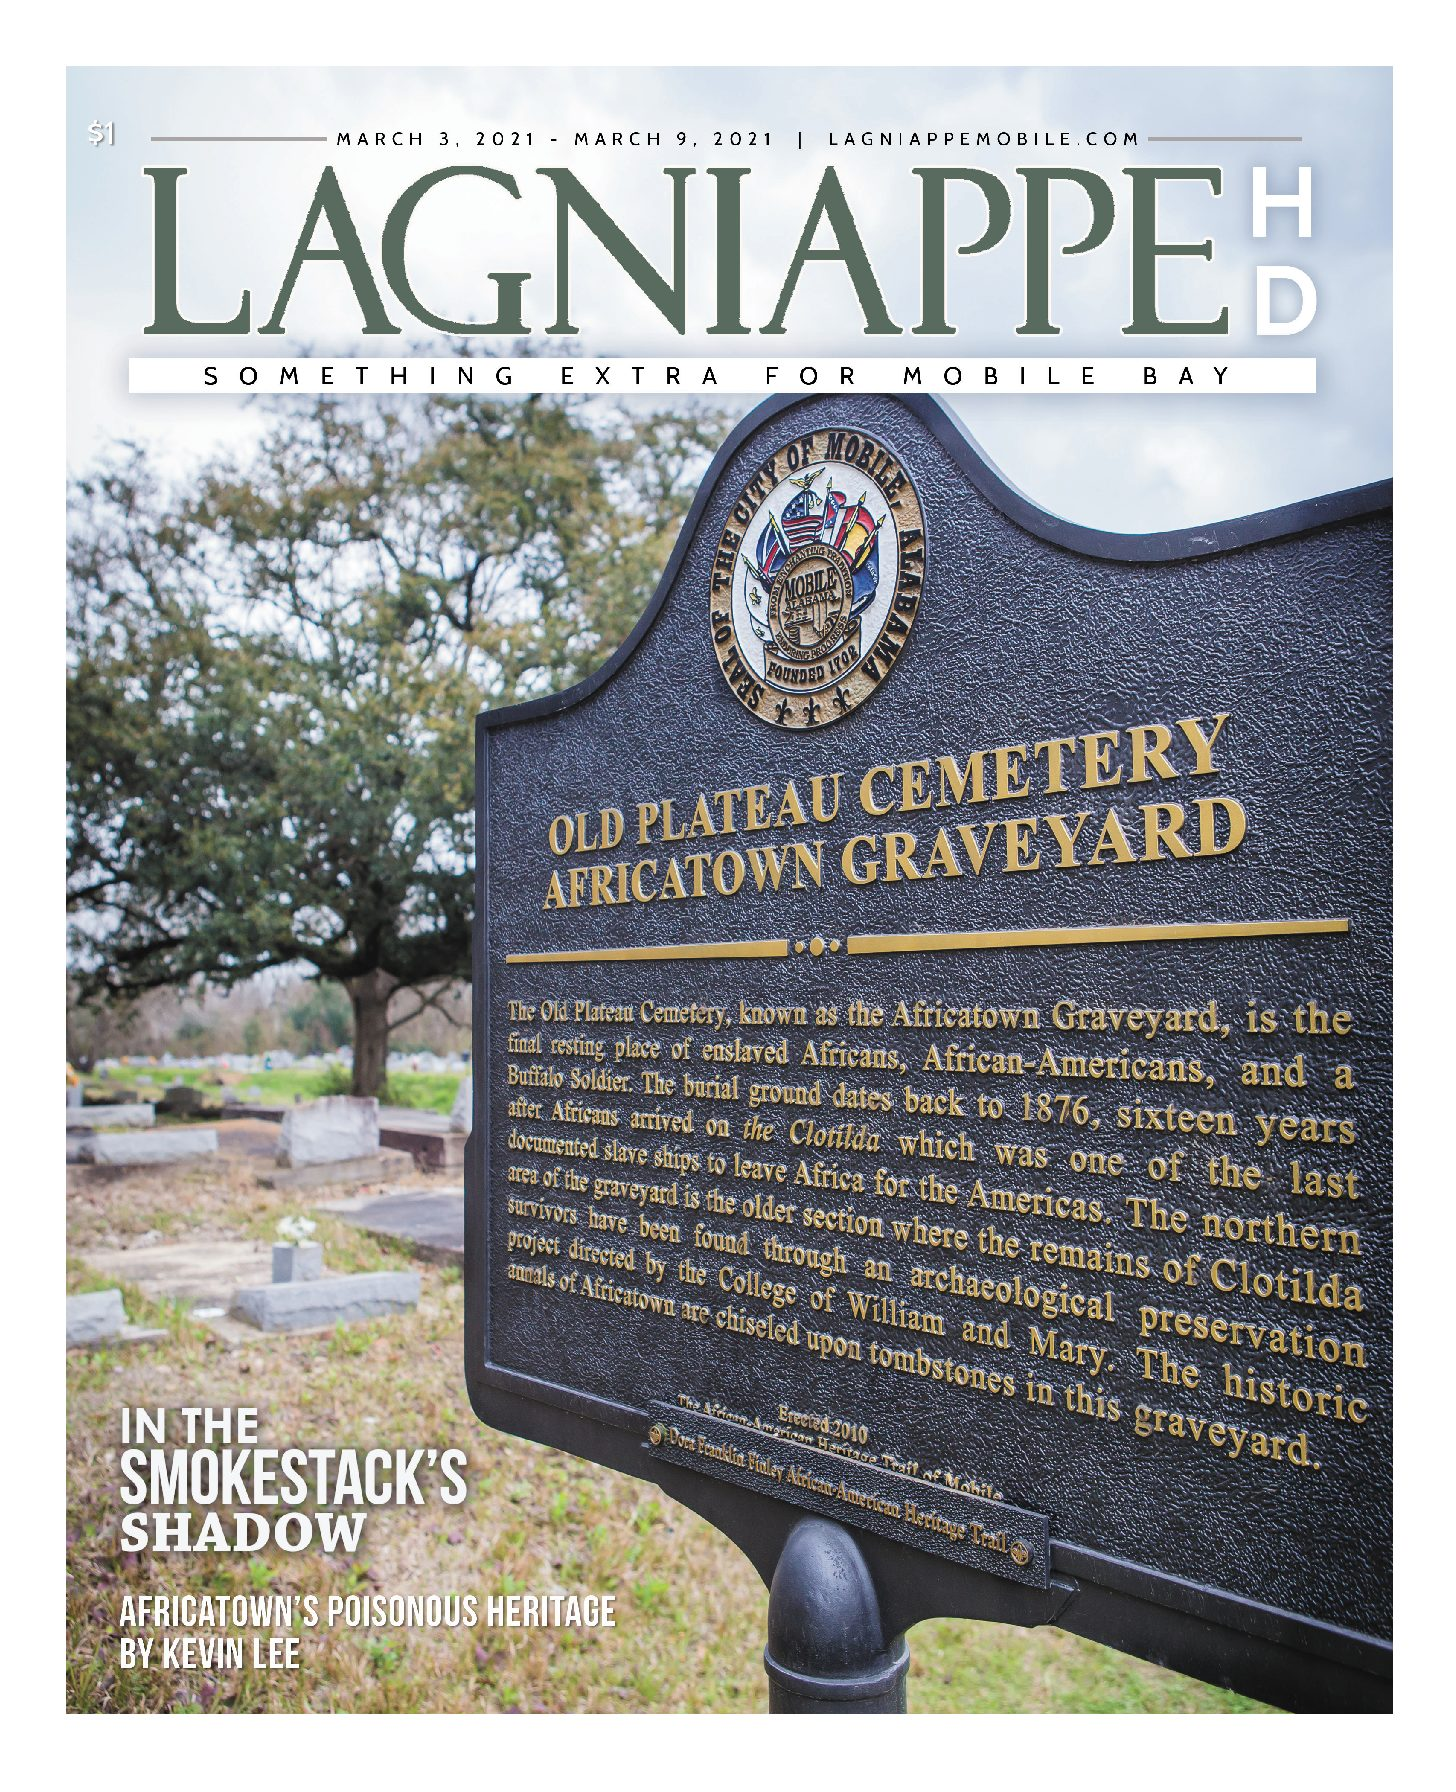 Lagniappe: March 3, 2021 – March 9, 2021